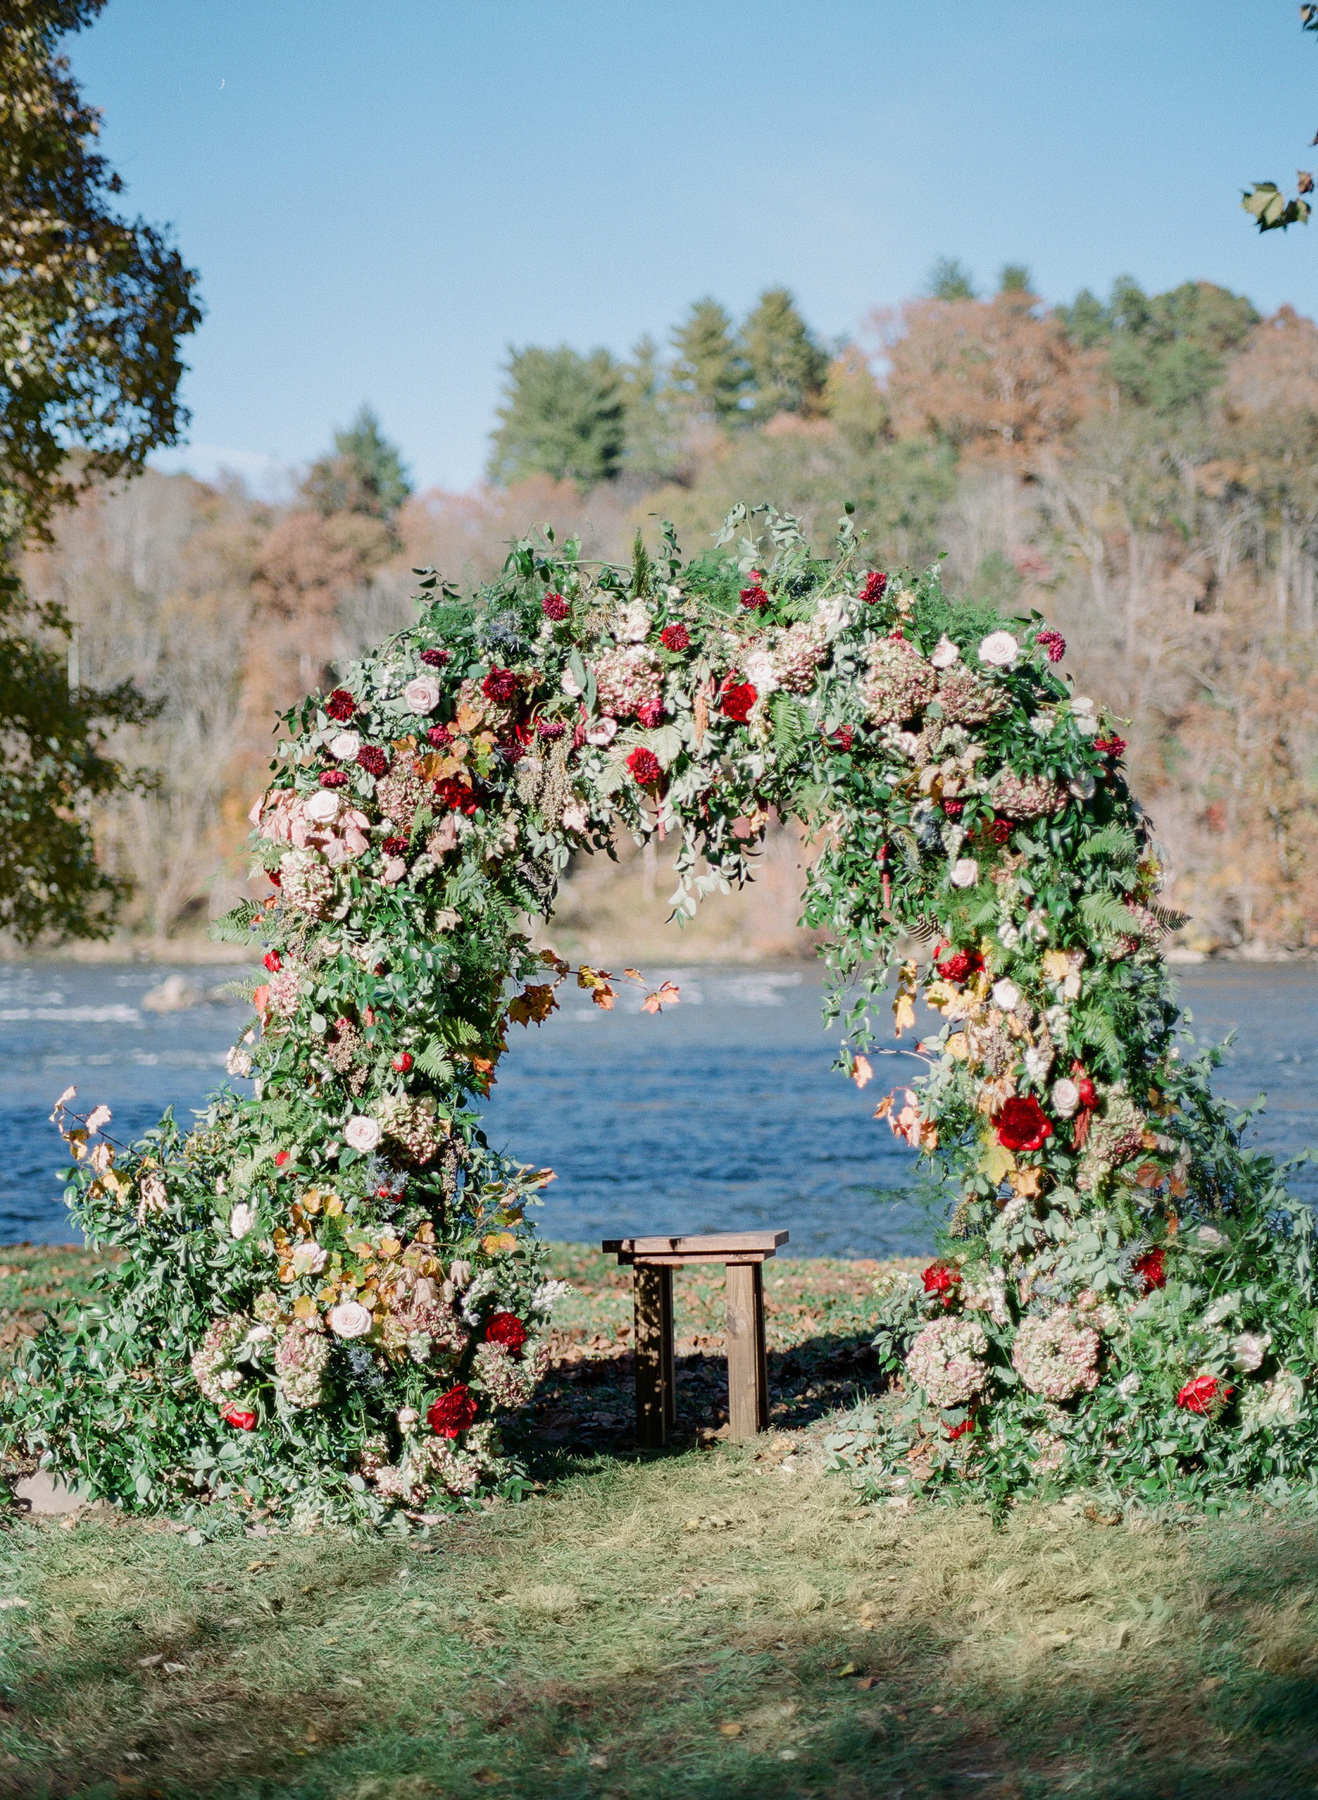 floral arch wedding ceremony backdrop next to river